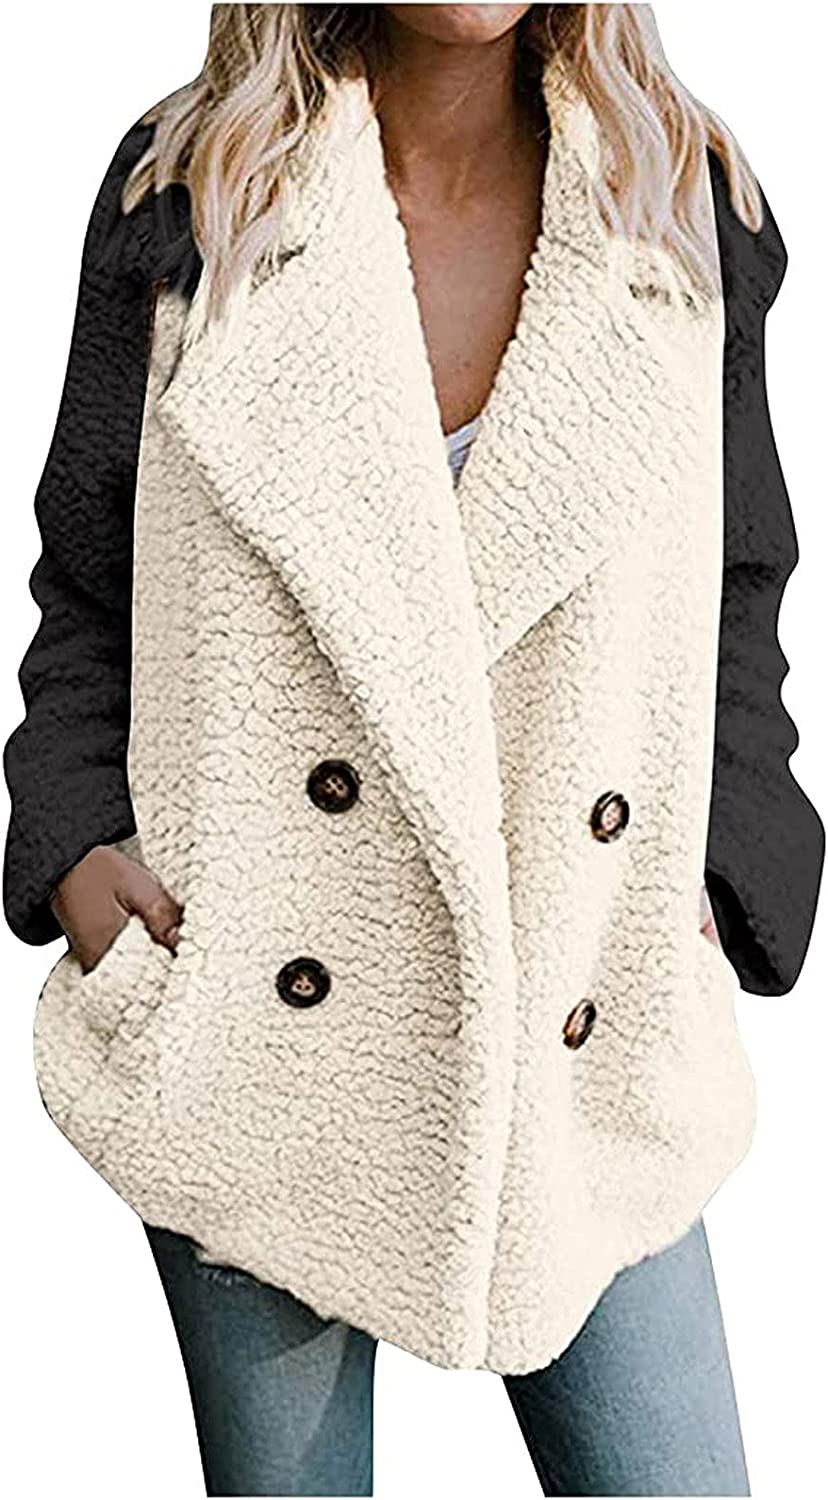 Hatoys SALENEW very popular Womens Jackets Fleece Coat Color Double Match Sleeves Bre Recommendation